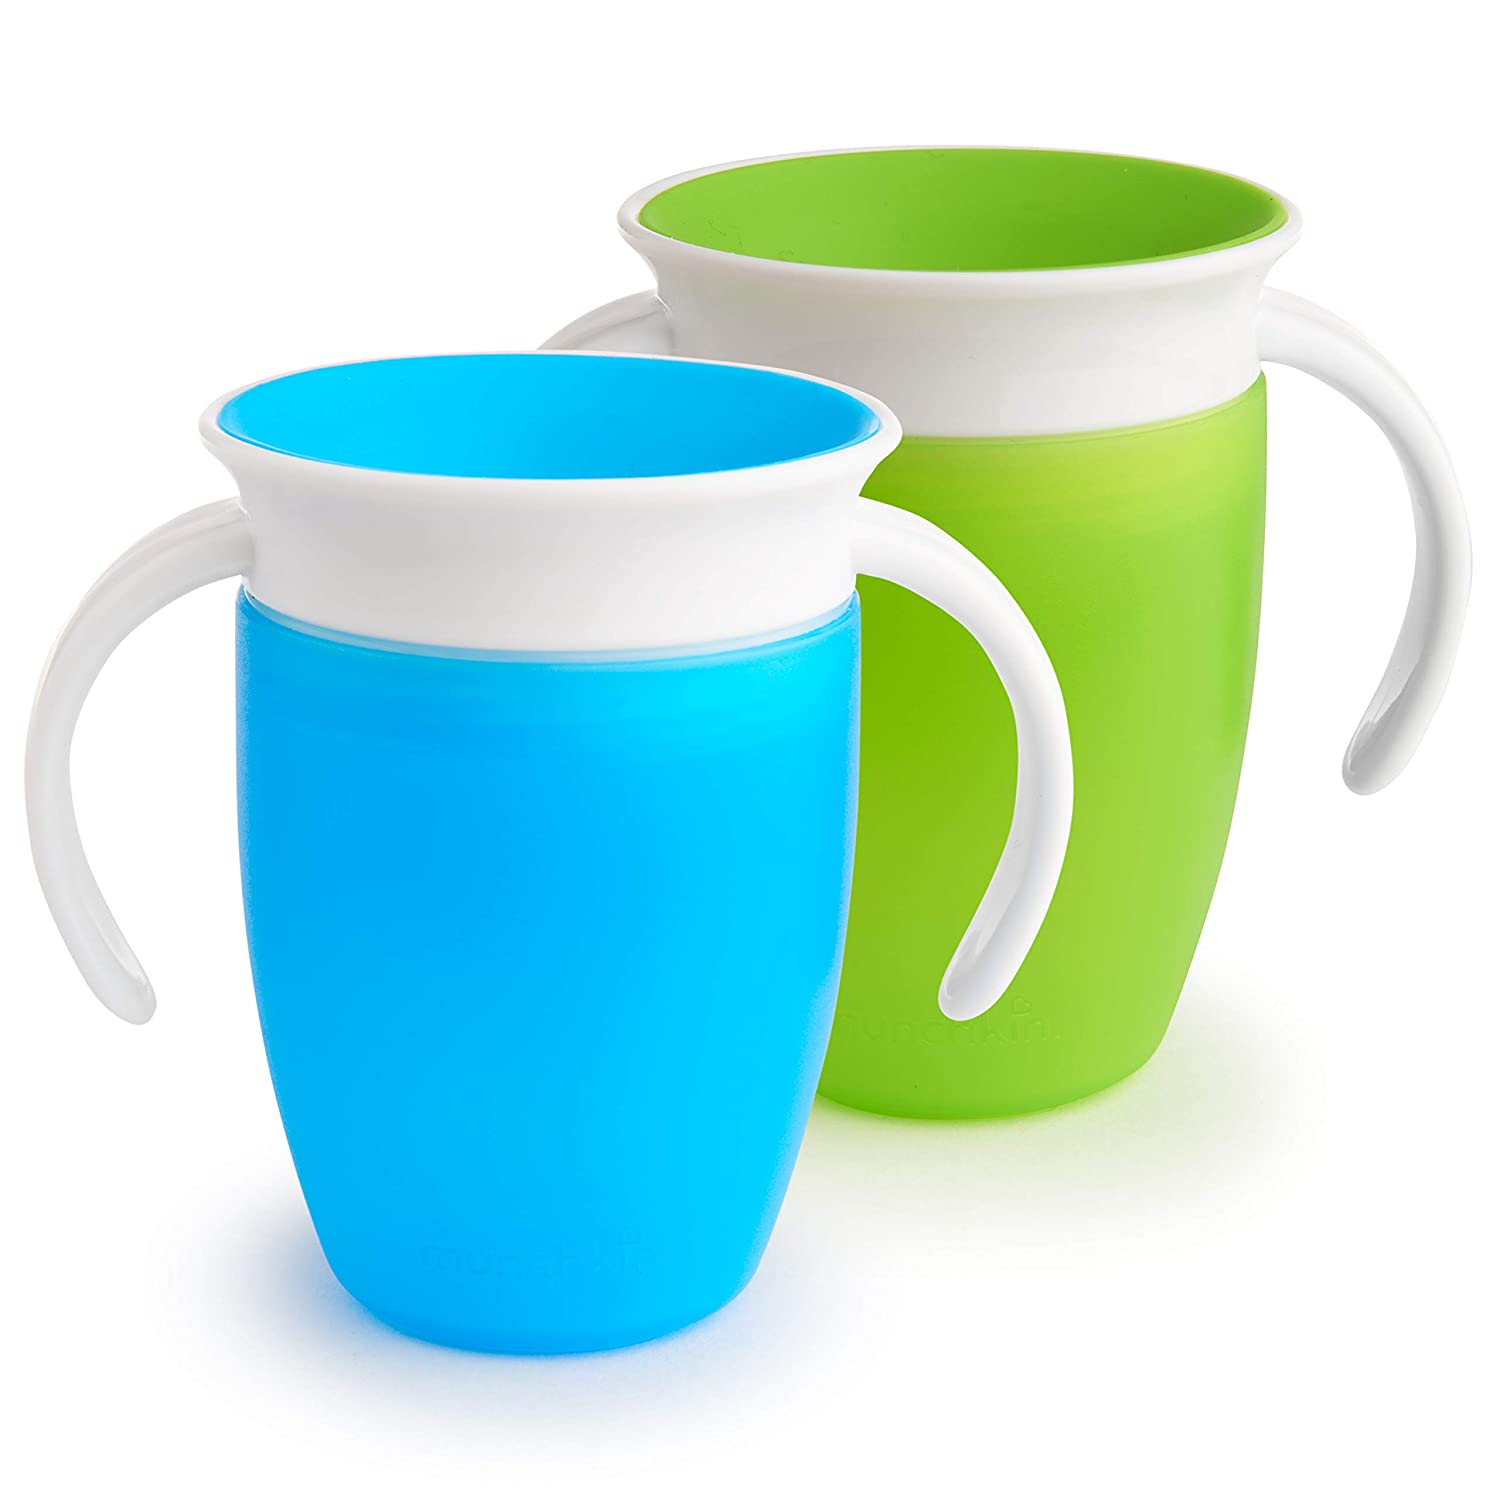 Top 9 Best Sippy Cup For 6 Month Old Breastfed Baby (2020 Reviews) 2